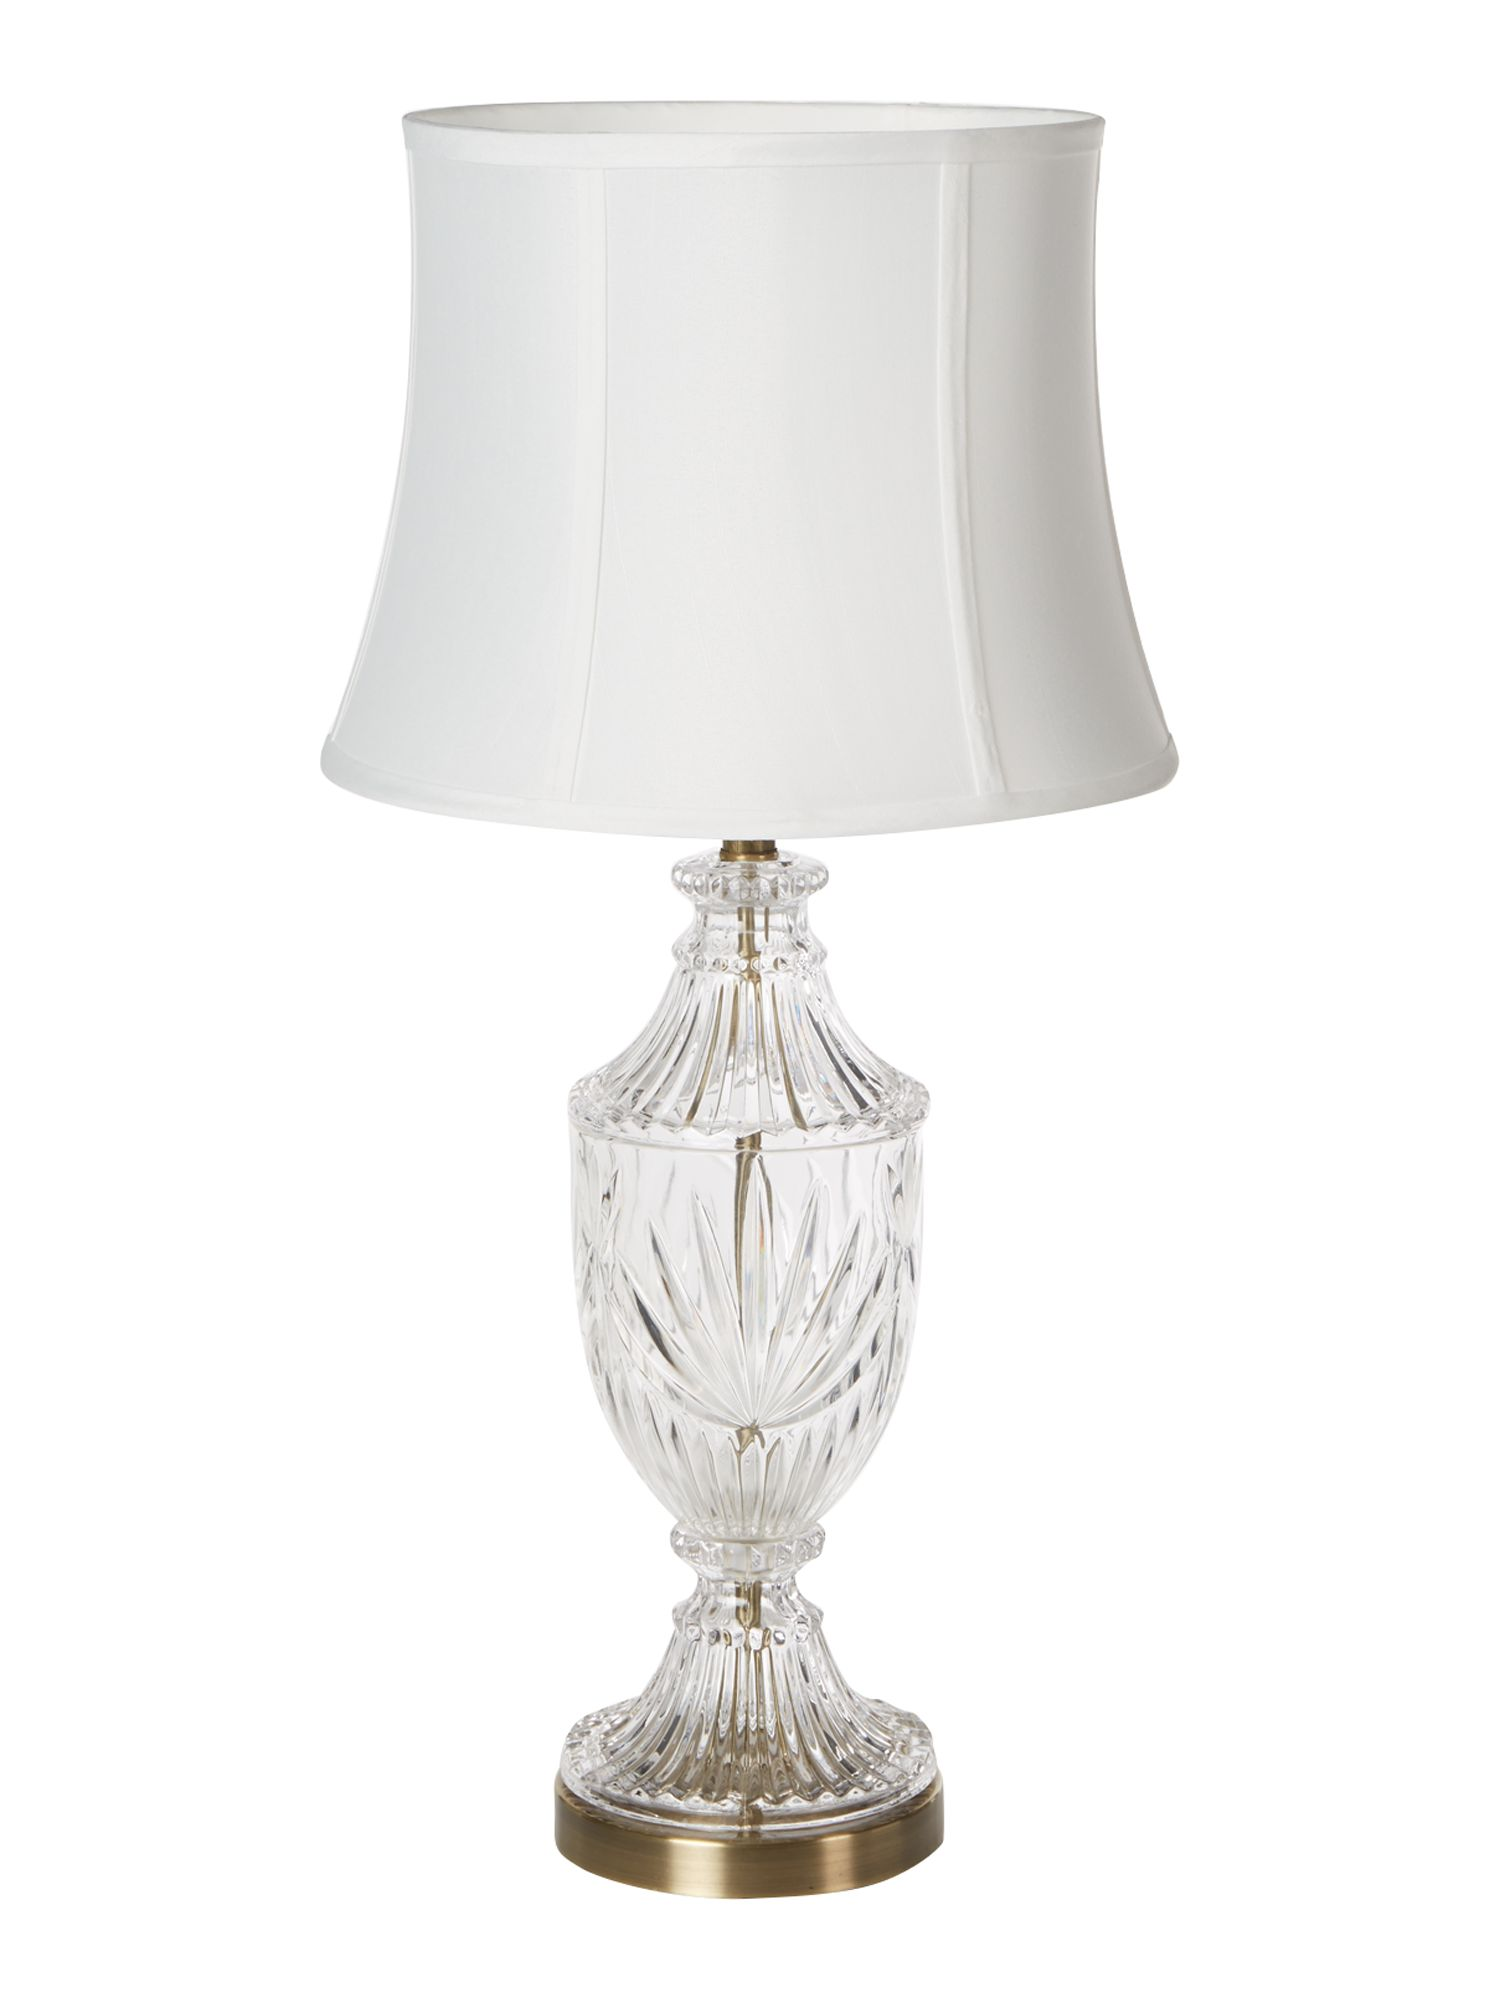 shabby chic table lamps table lamps sale uk. Black Bedroom Furniture Sets. Home Design Ideas